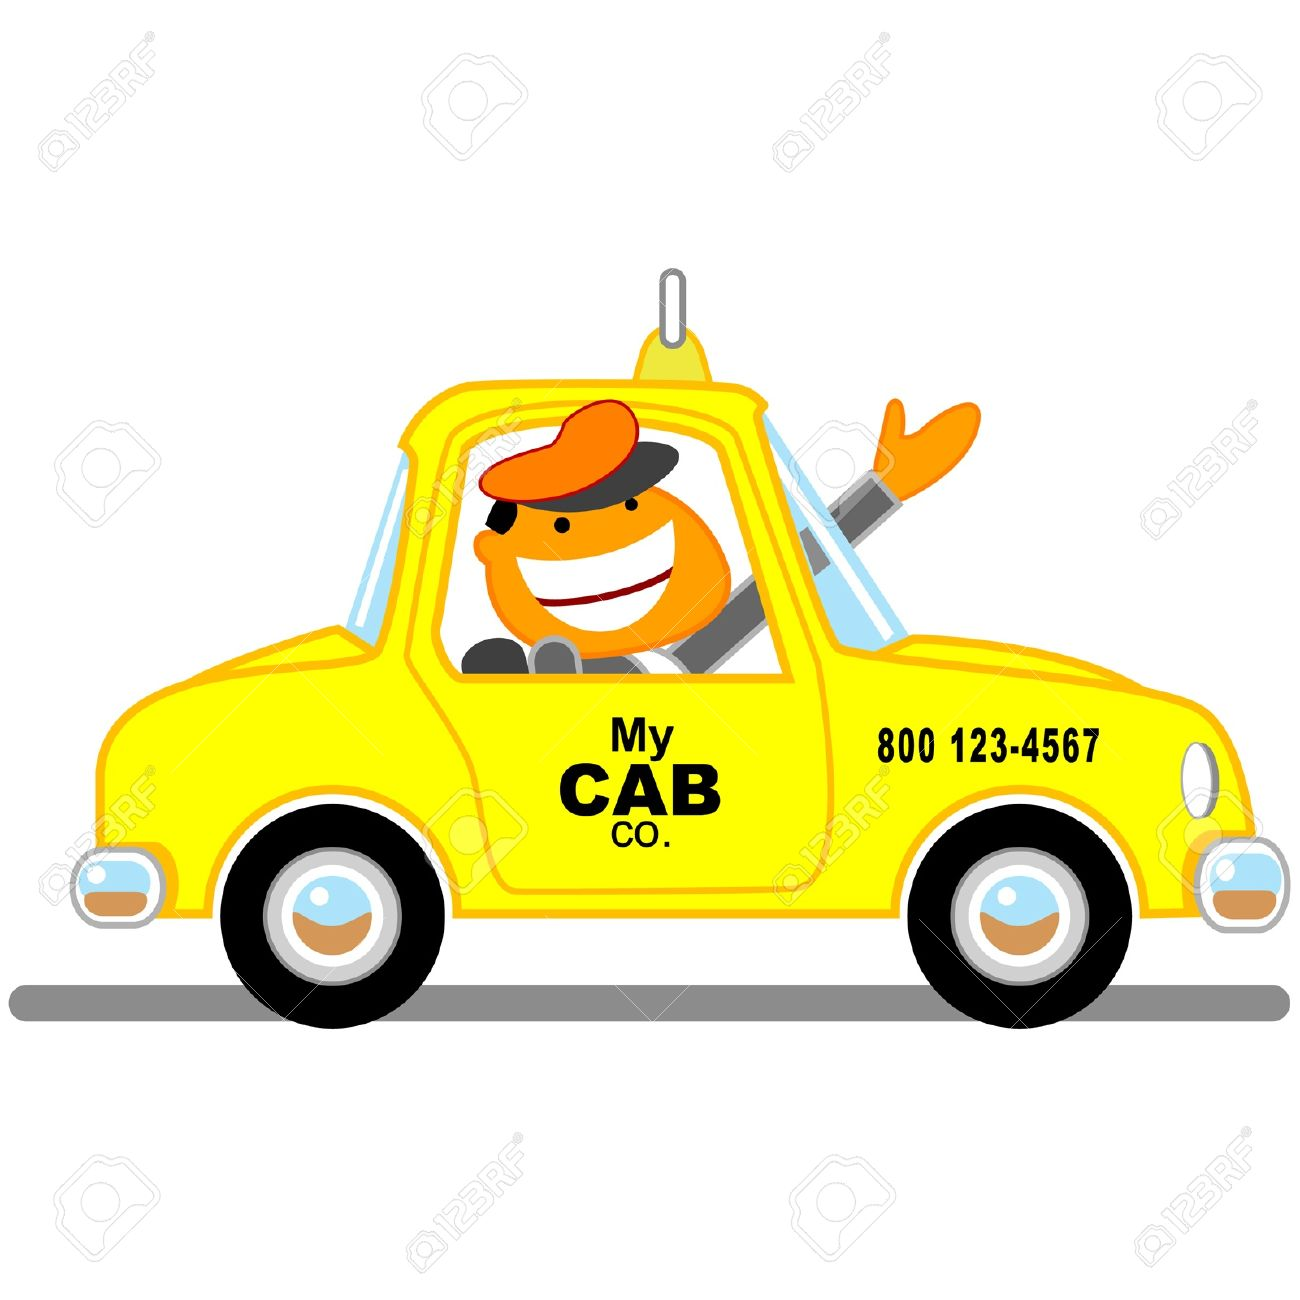 Cab pictures clipart vector download Cab clipart 1 » Clipart Station vector download